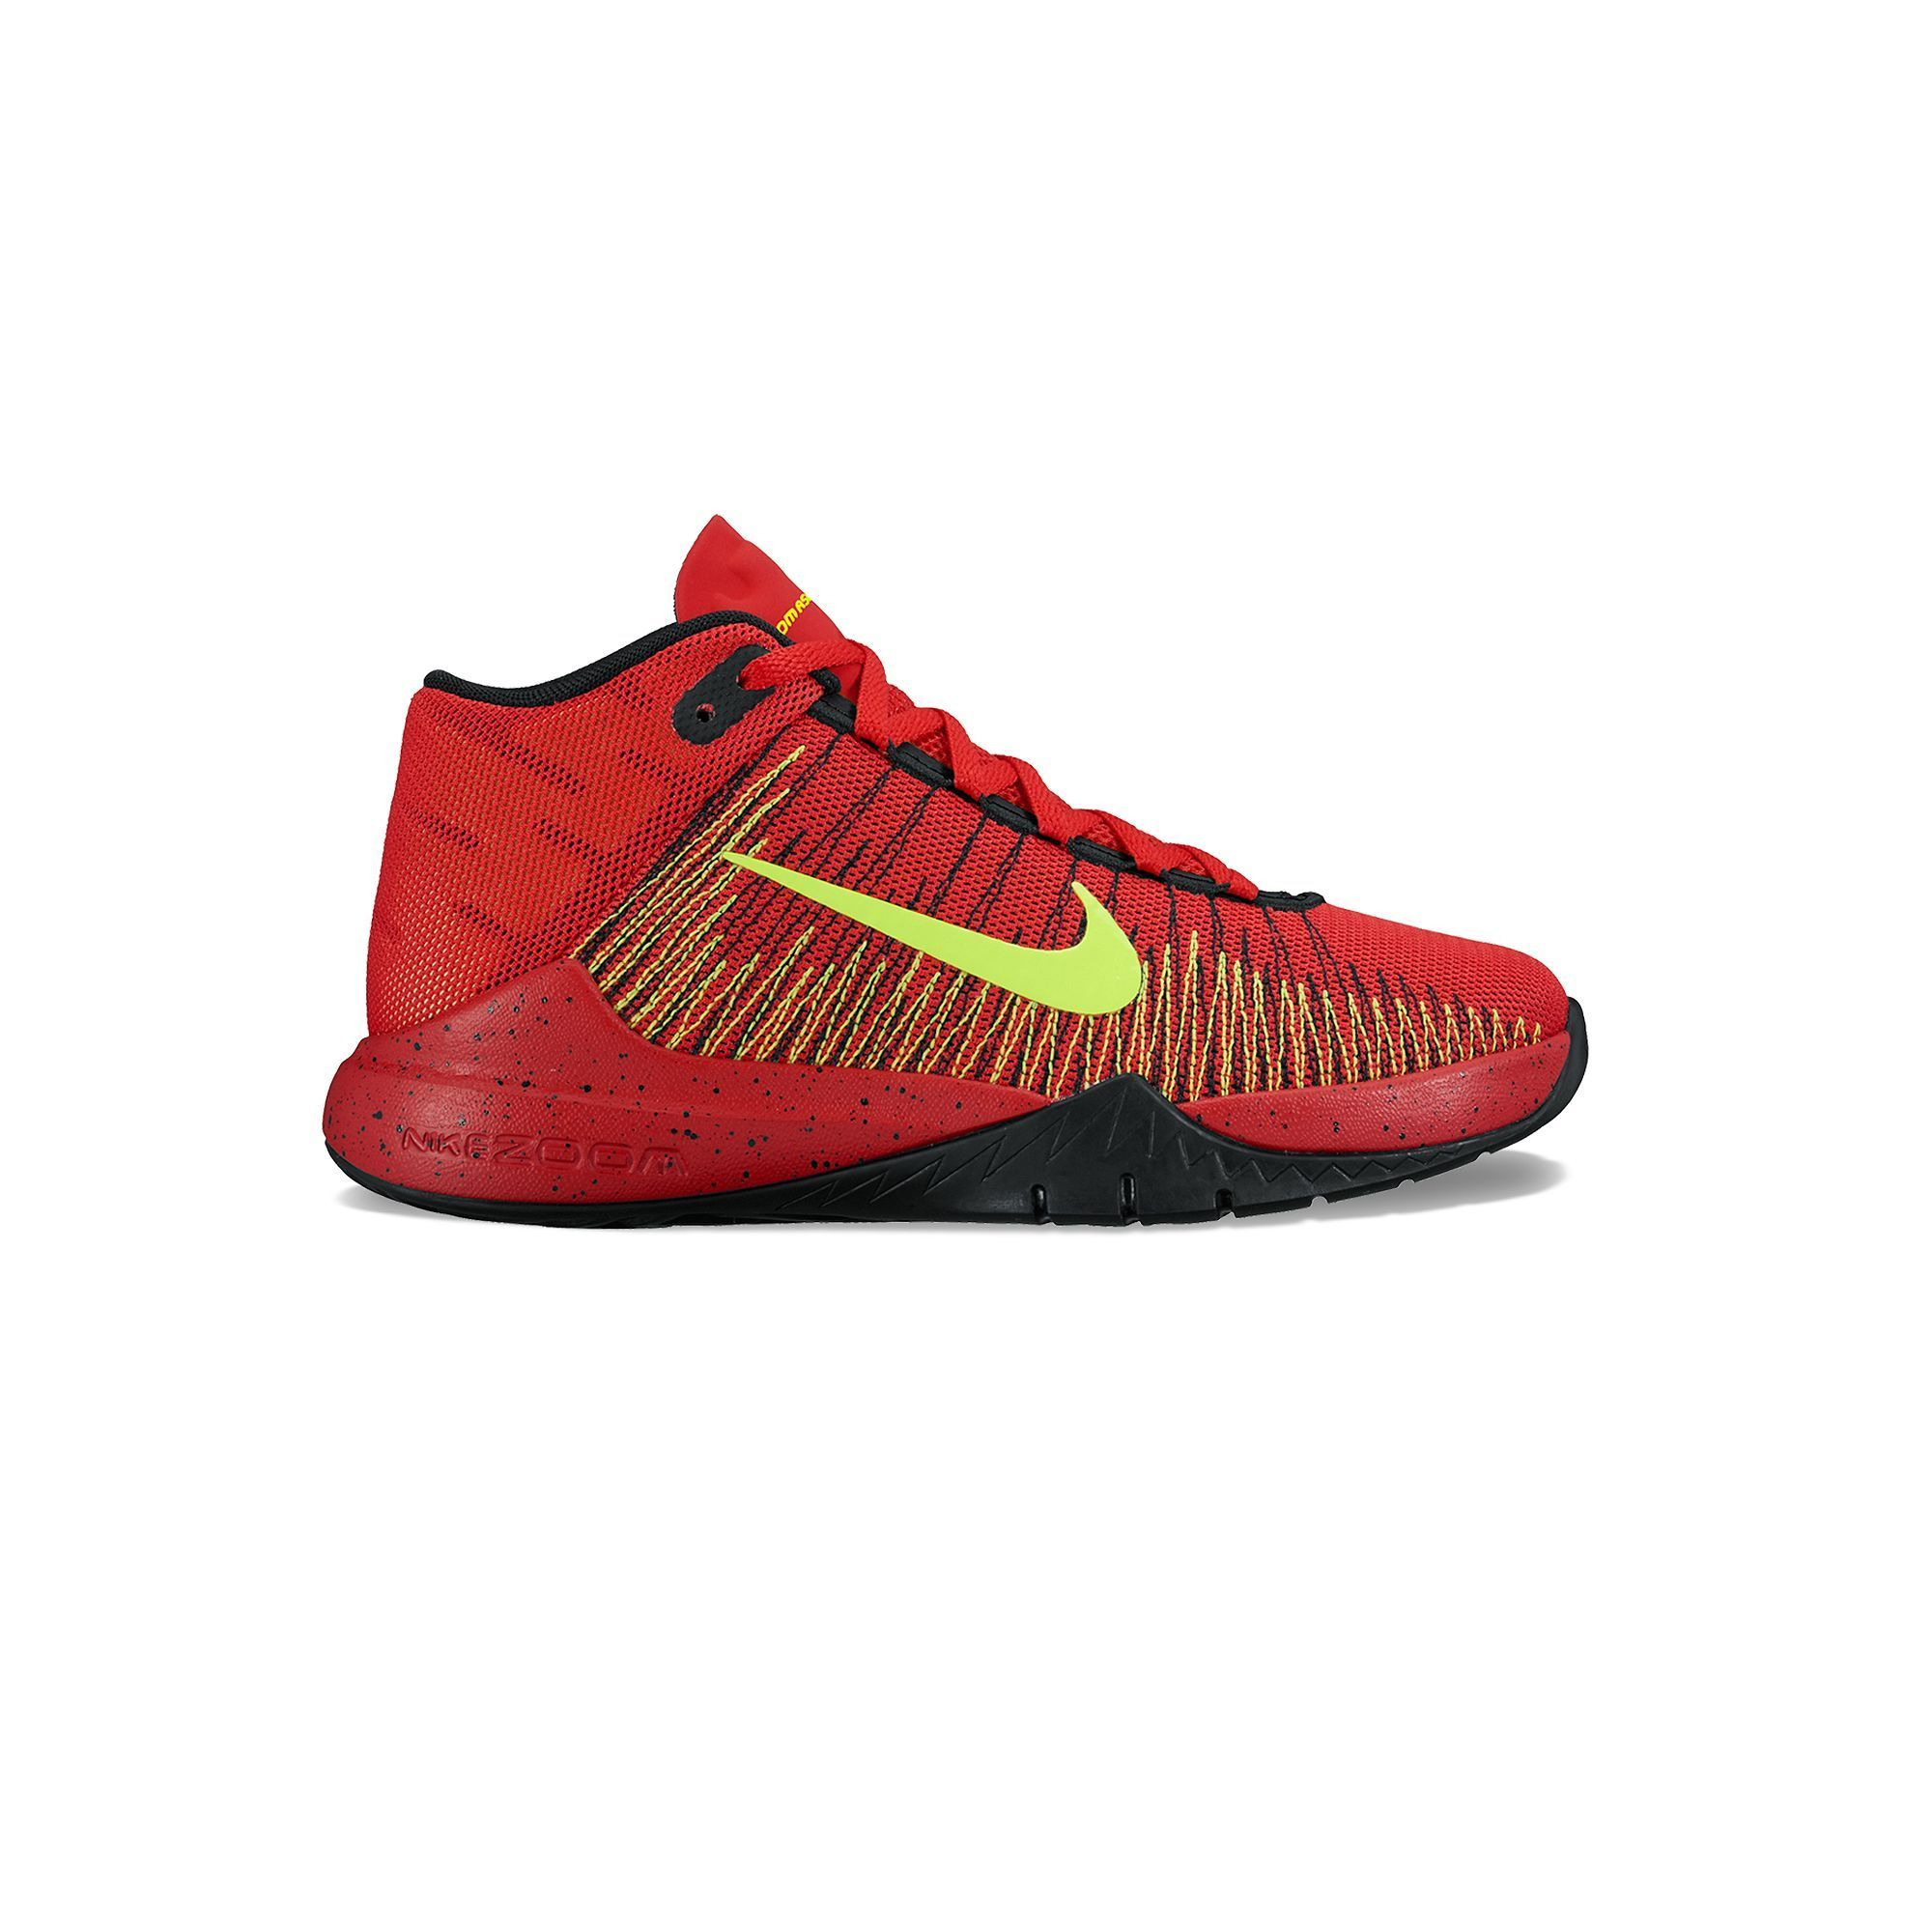 sale retailer c895a 19d33 Nike Zoom Ascension Grade School Boys  Basketball Shoes, Size  6, Dark Red